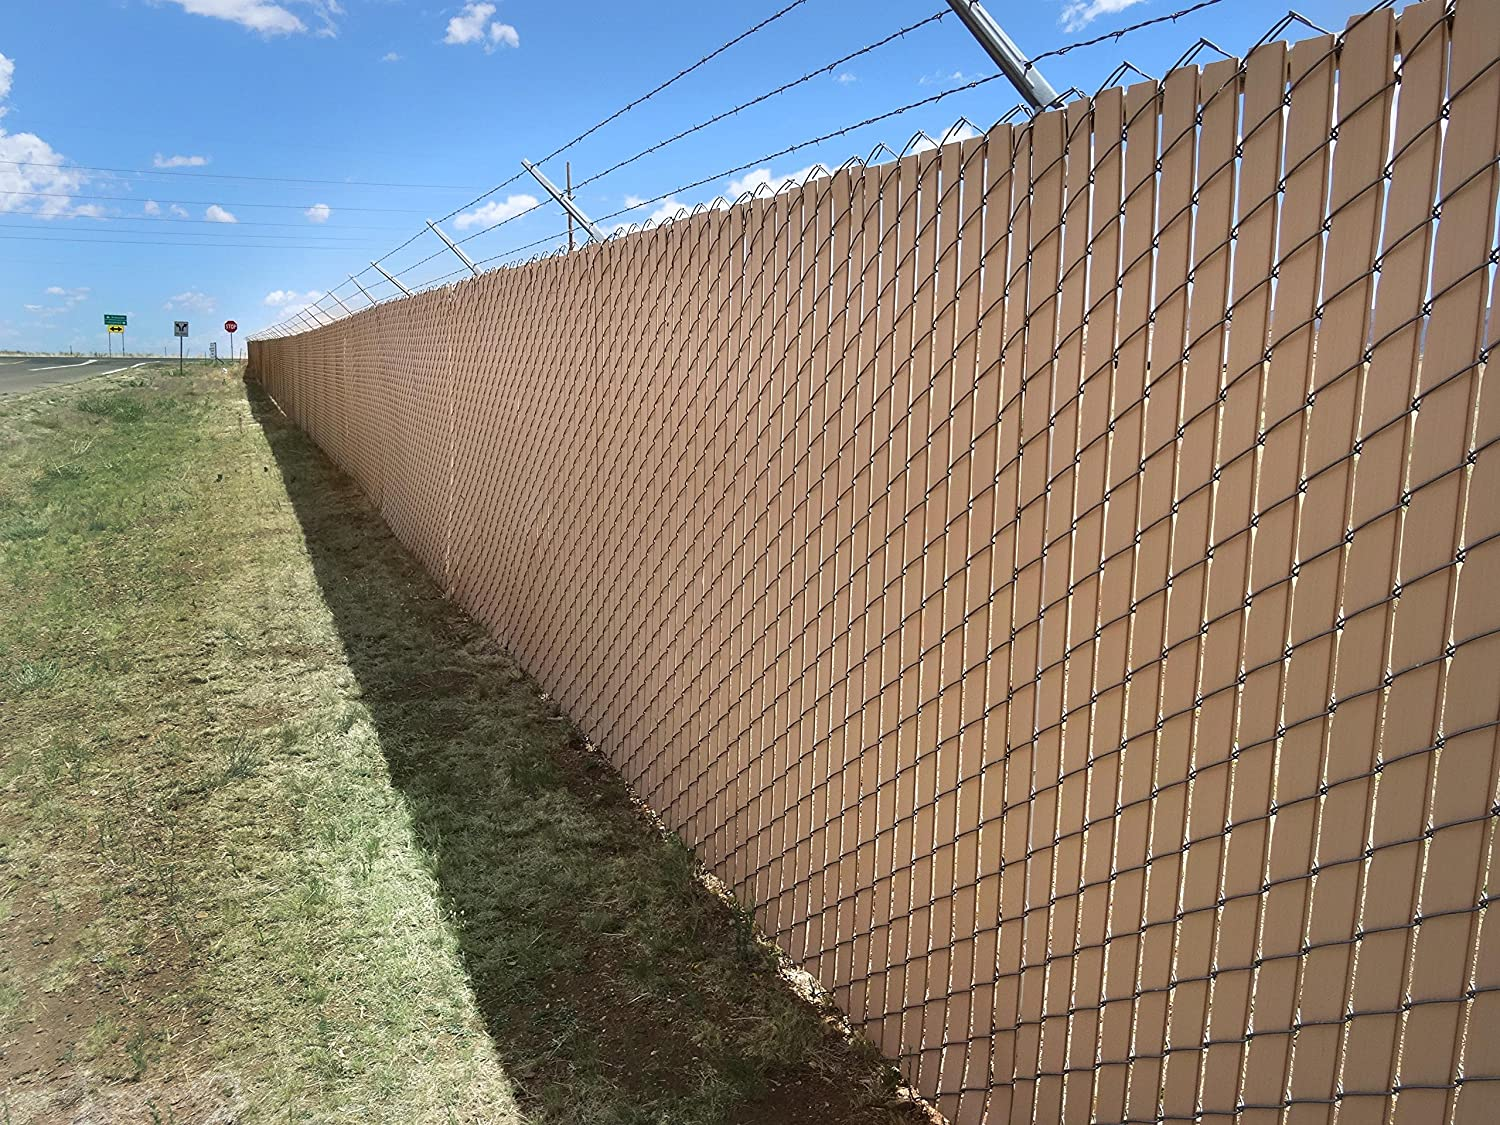 Privacy screen for chain link fences - Amazon Com Pexco Finlink Chain Link Fence Slats 6 Ft Green Patio Lawn Garden